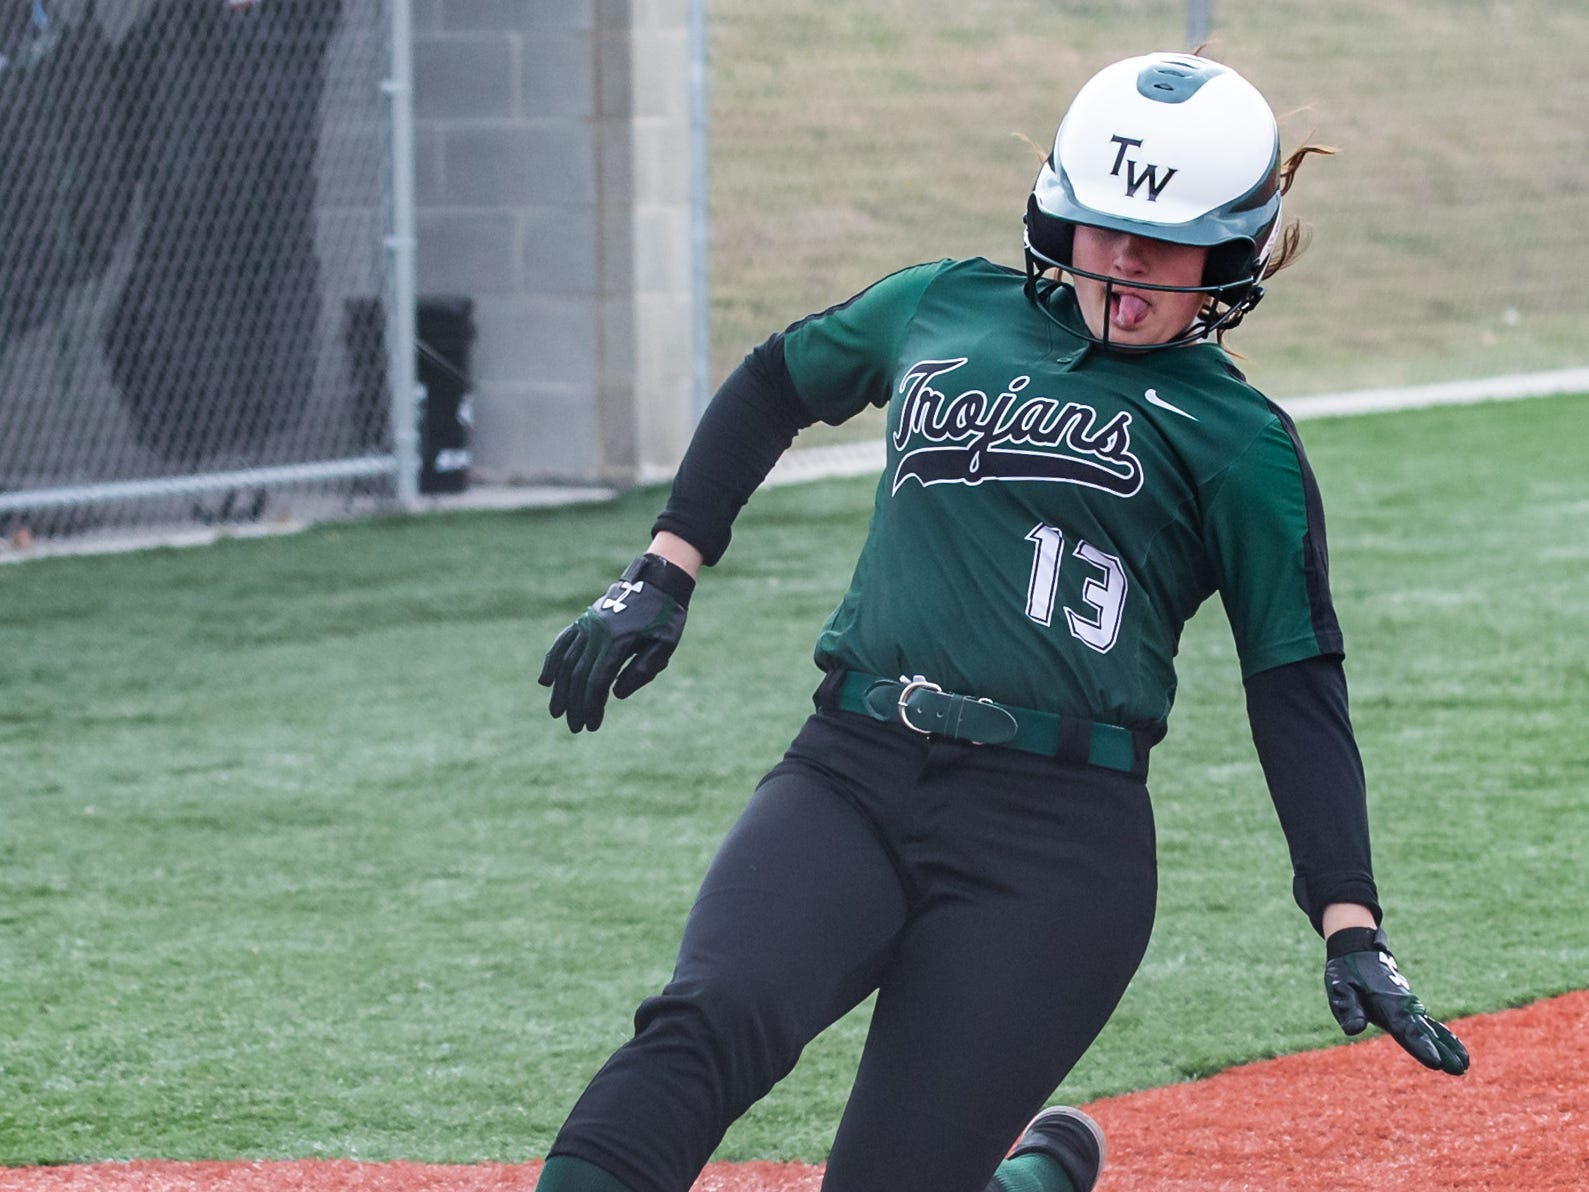 Wauwatosa West's Tess Helbig slides in for a run during the game at home against DSHA on Wednesday, April 17, 2019.